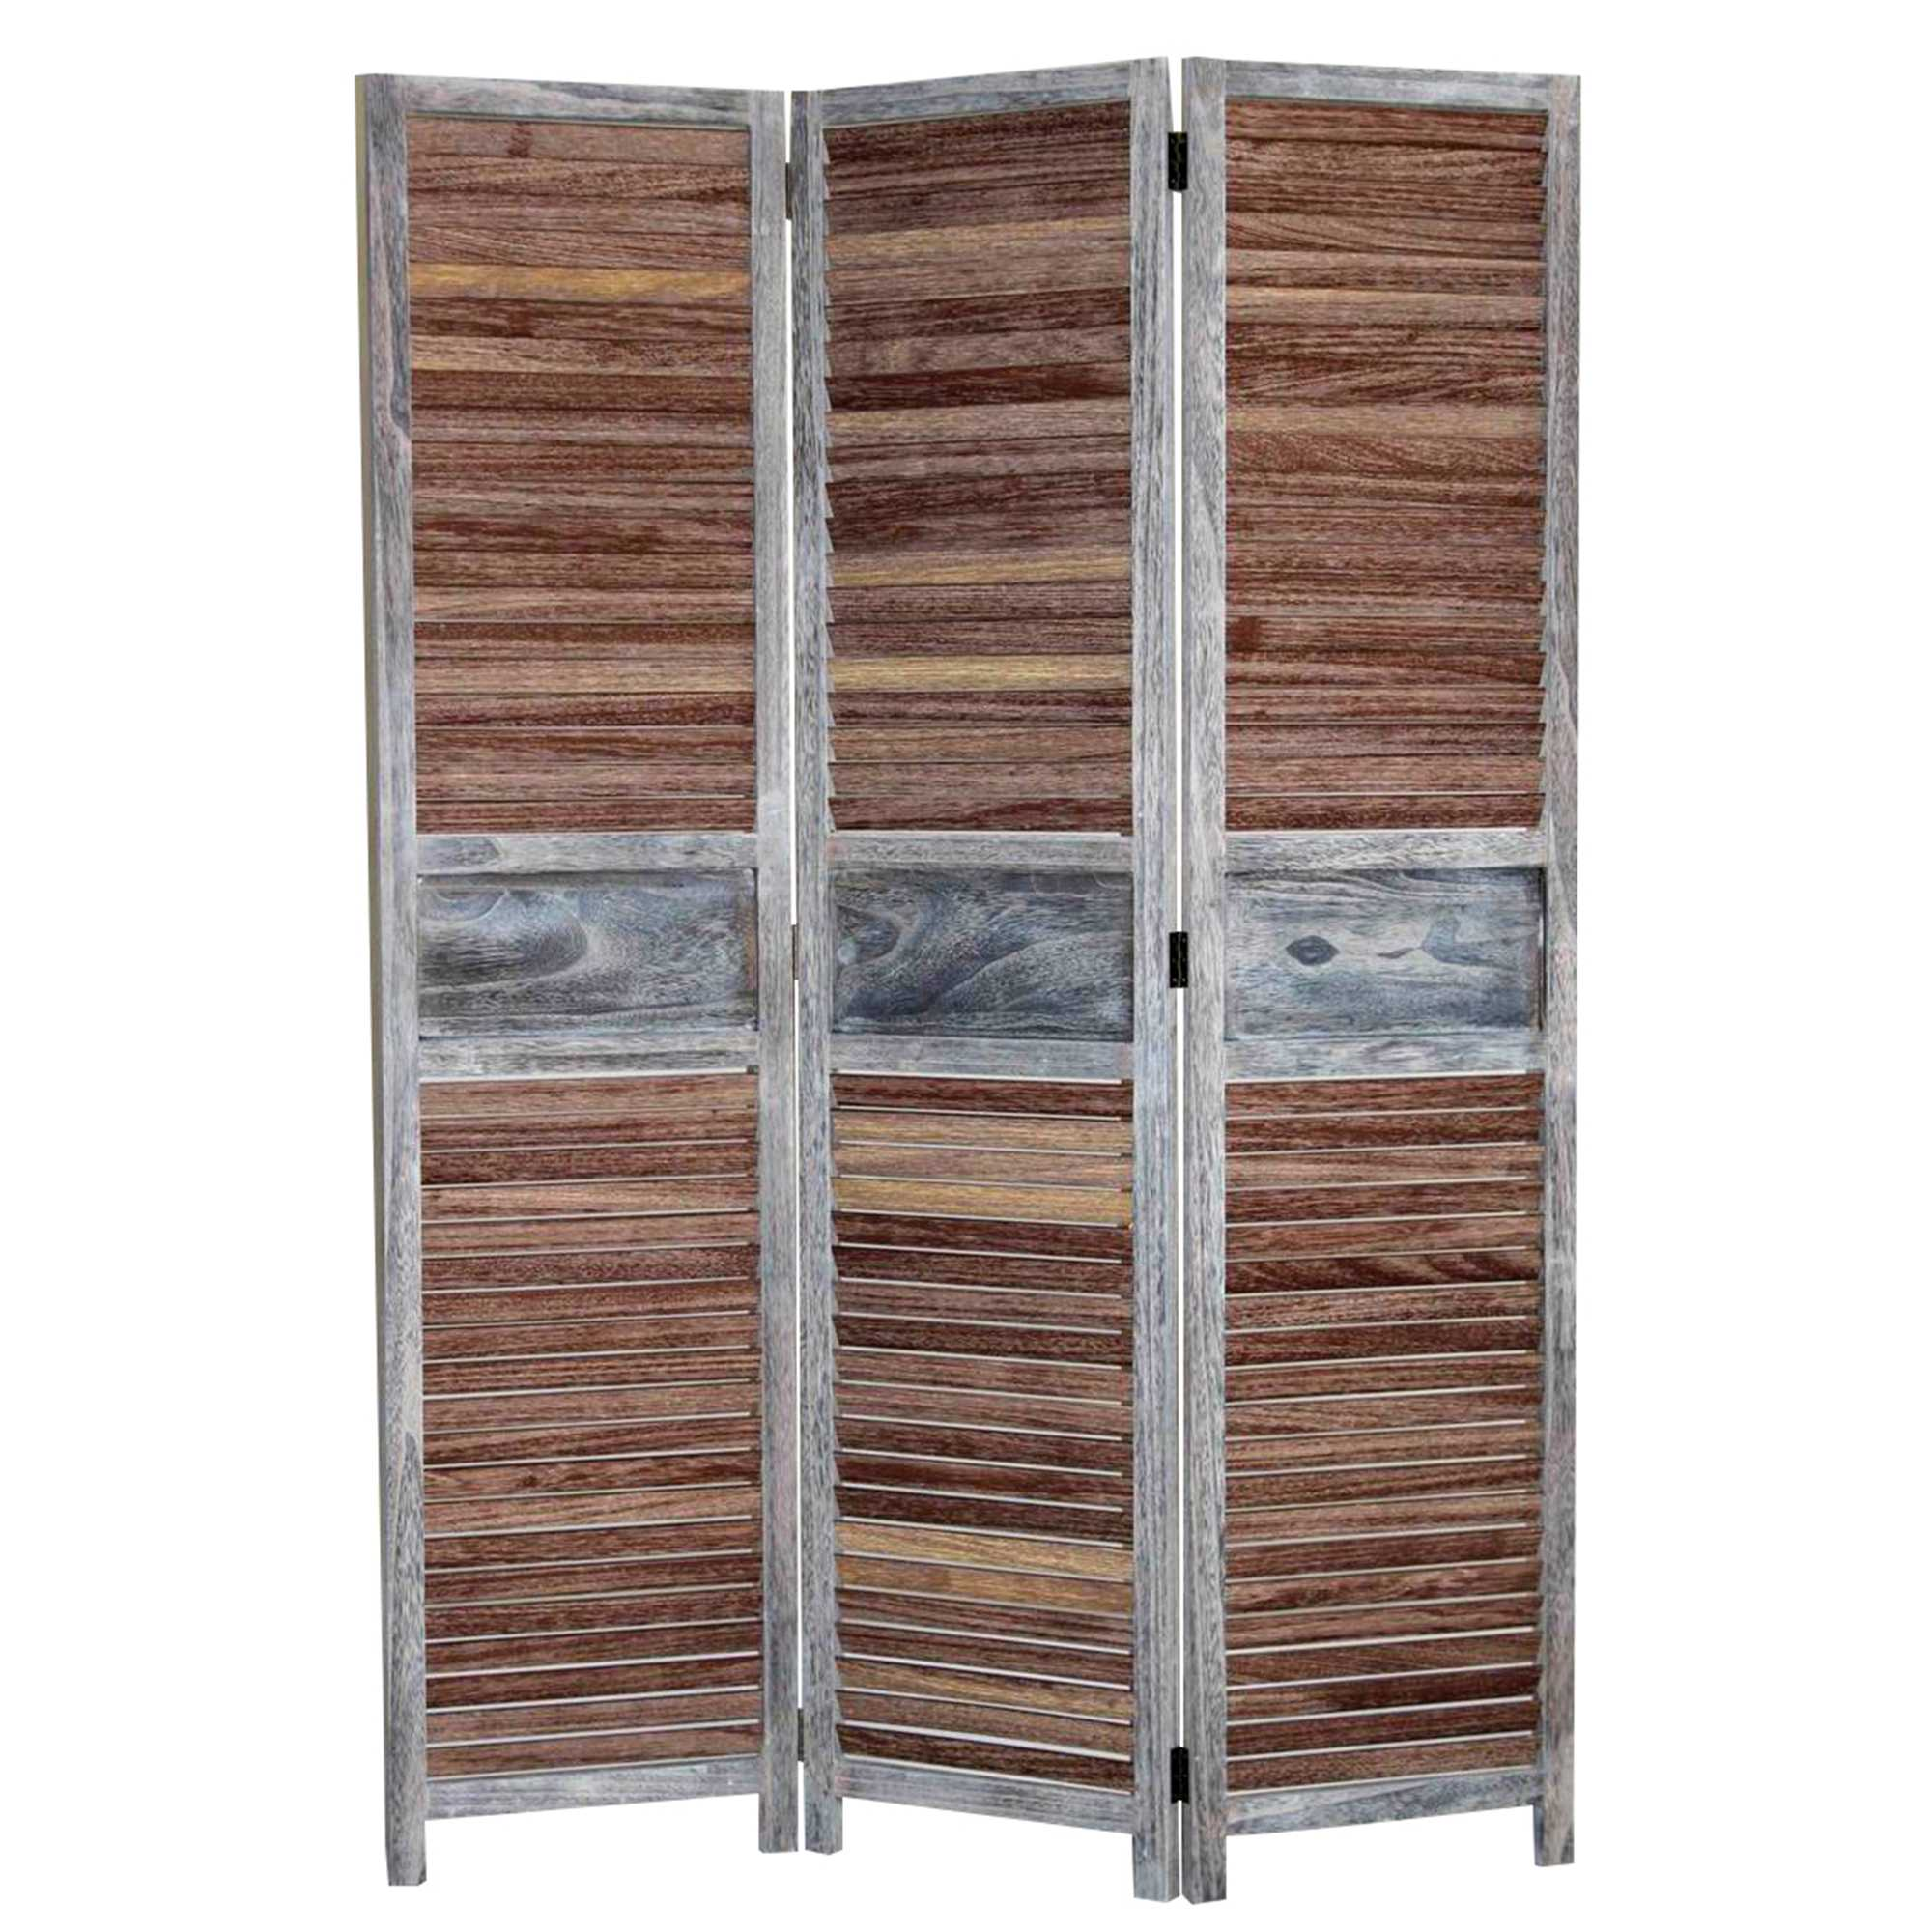 "1"" x 47"" x 67"" Brown, Wood - Screen"